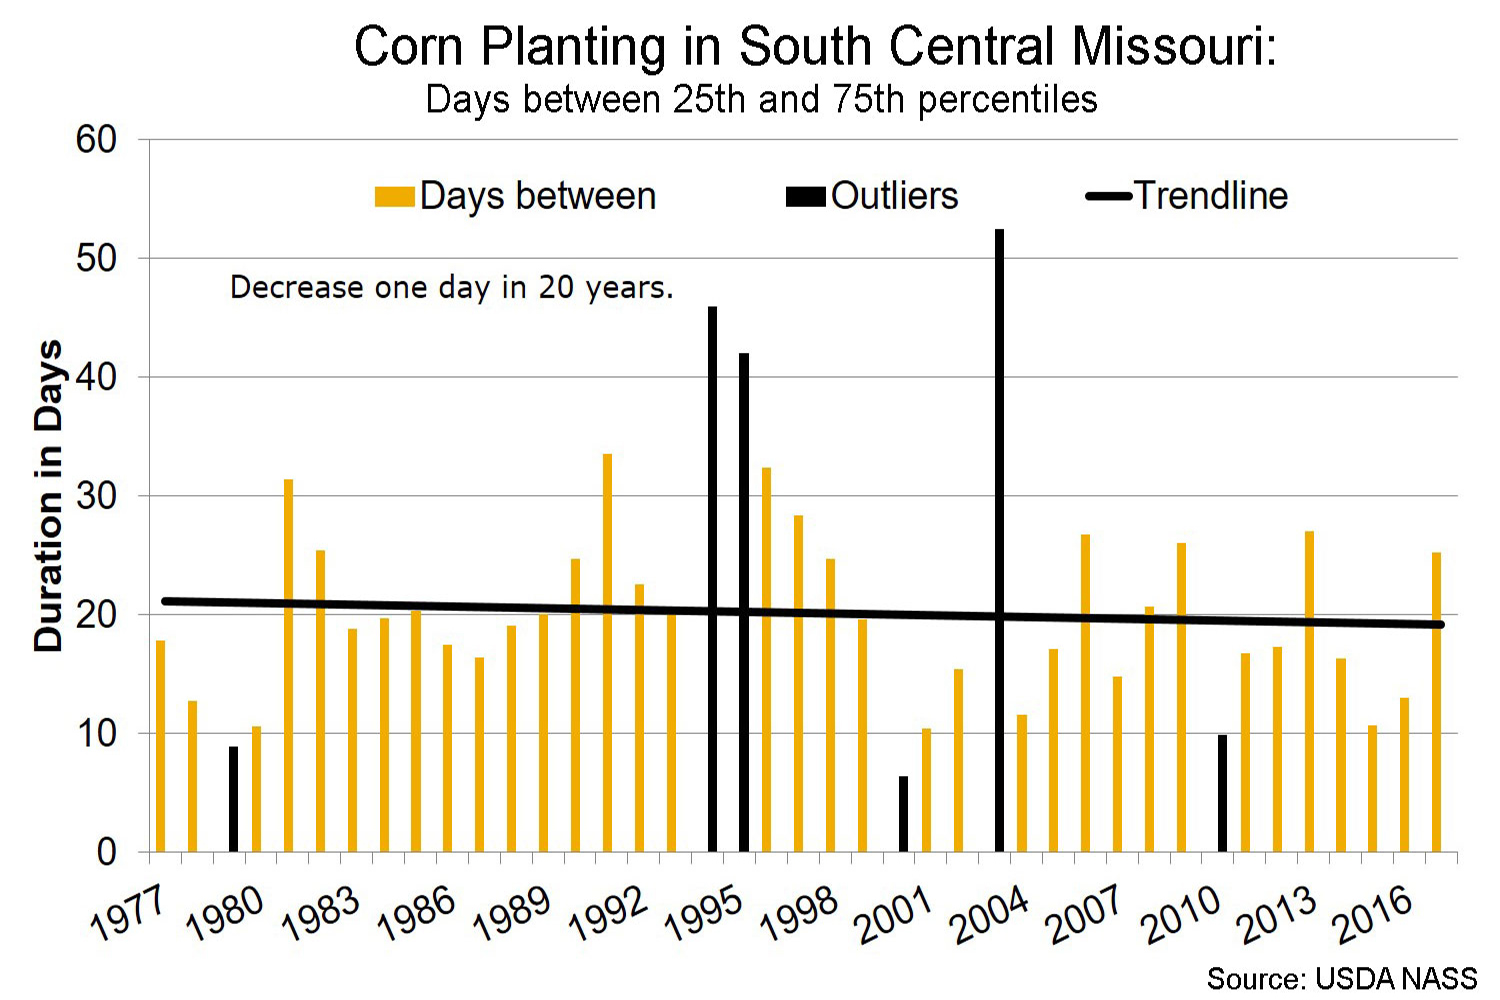 Corn planting in south central Missouri days between 25th and 75th percentiles chart